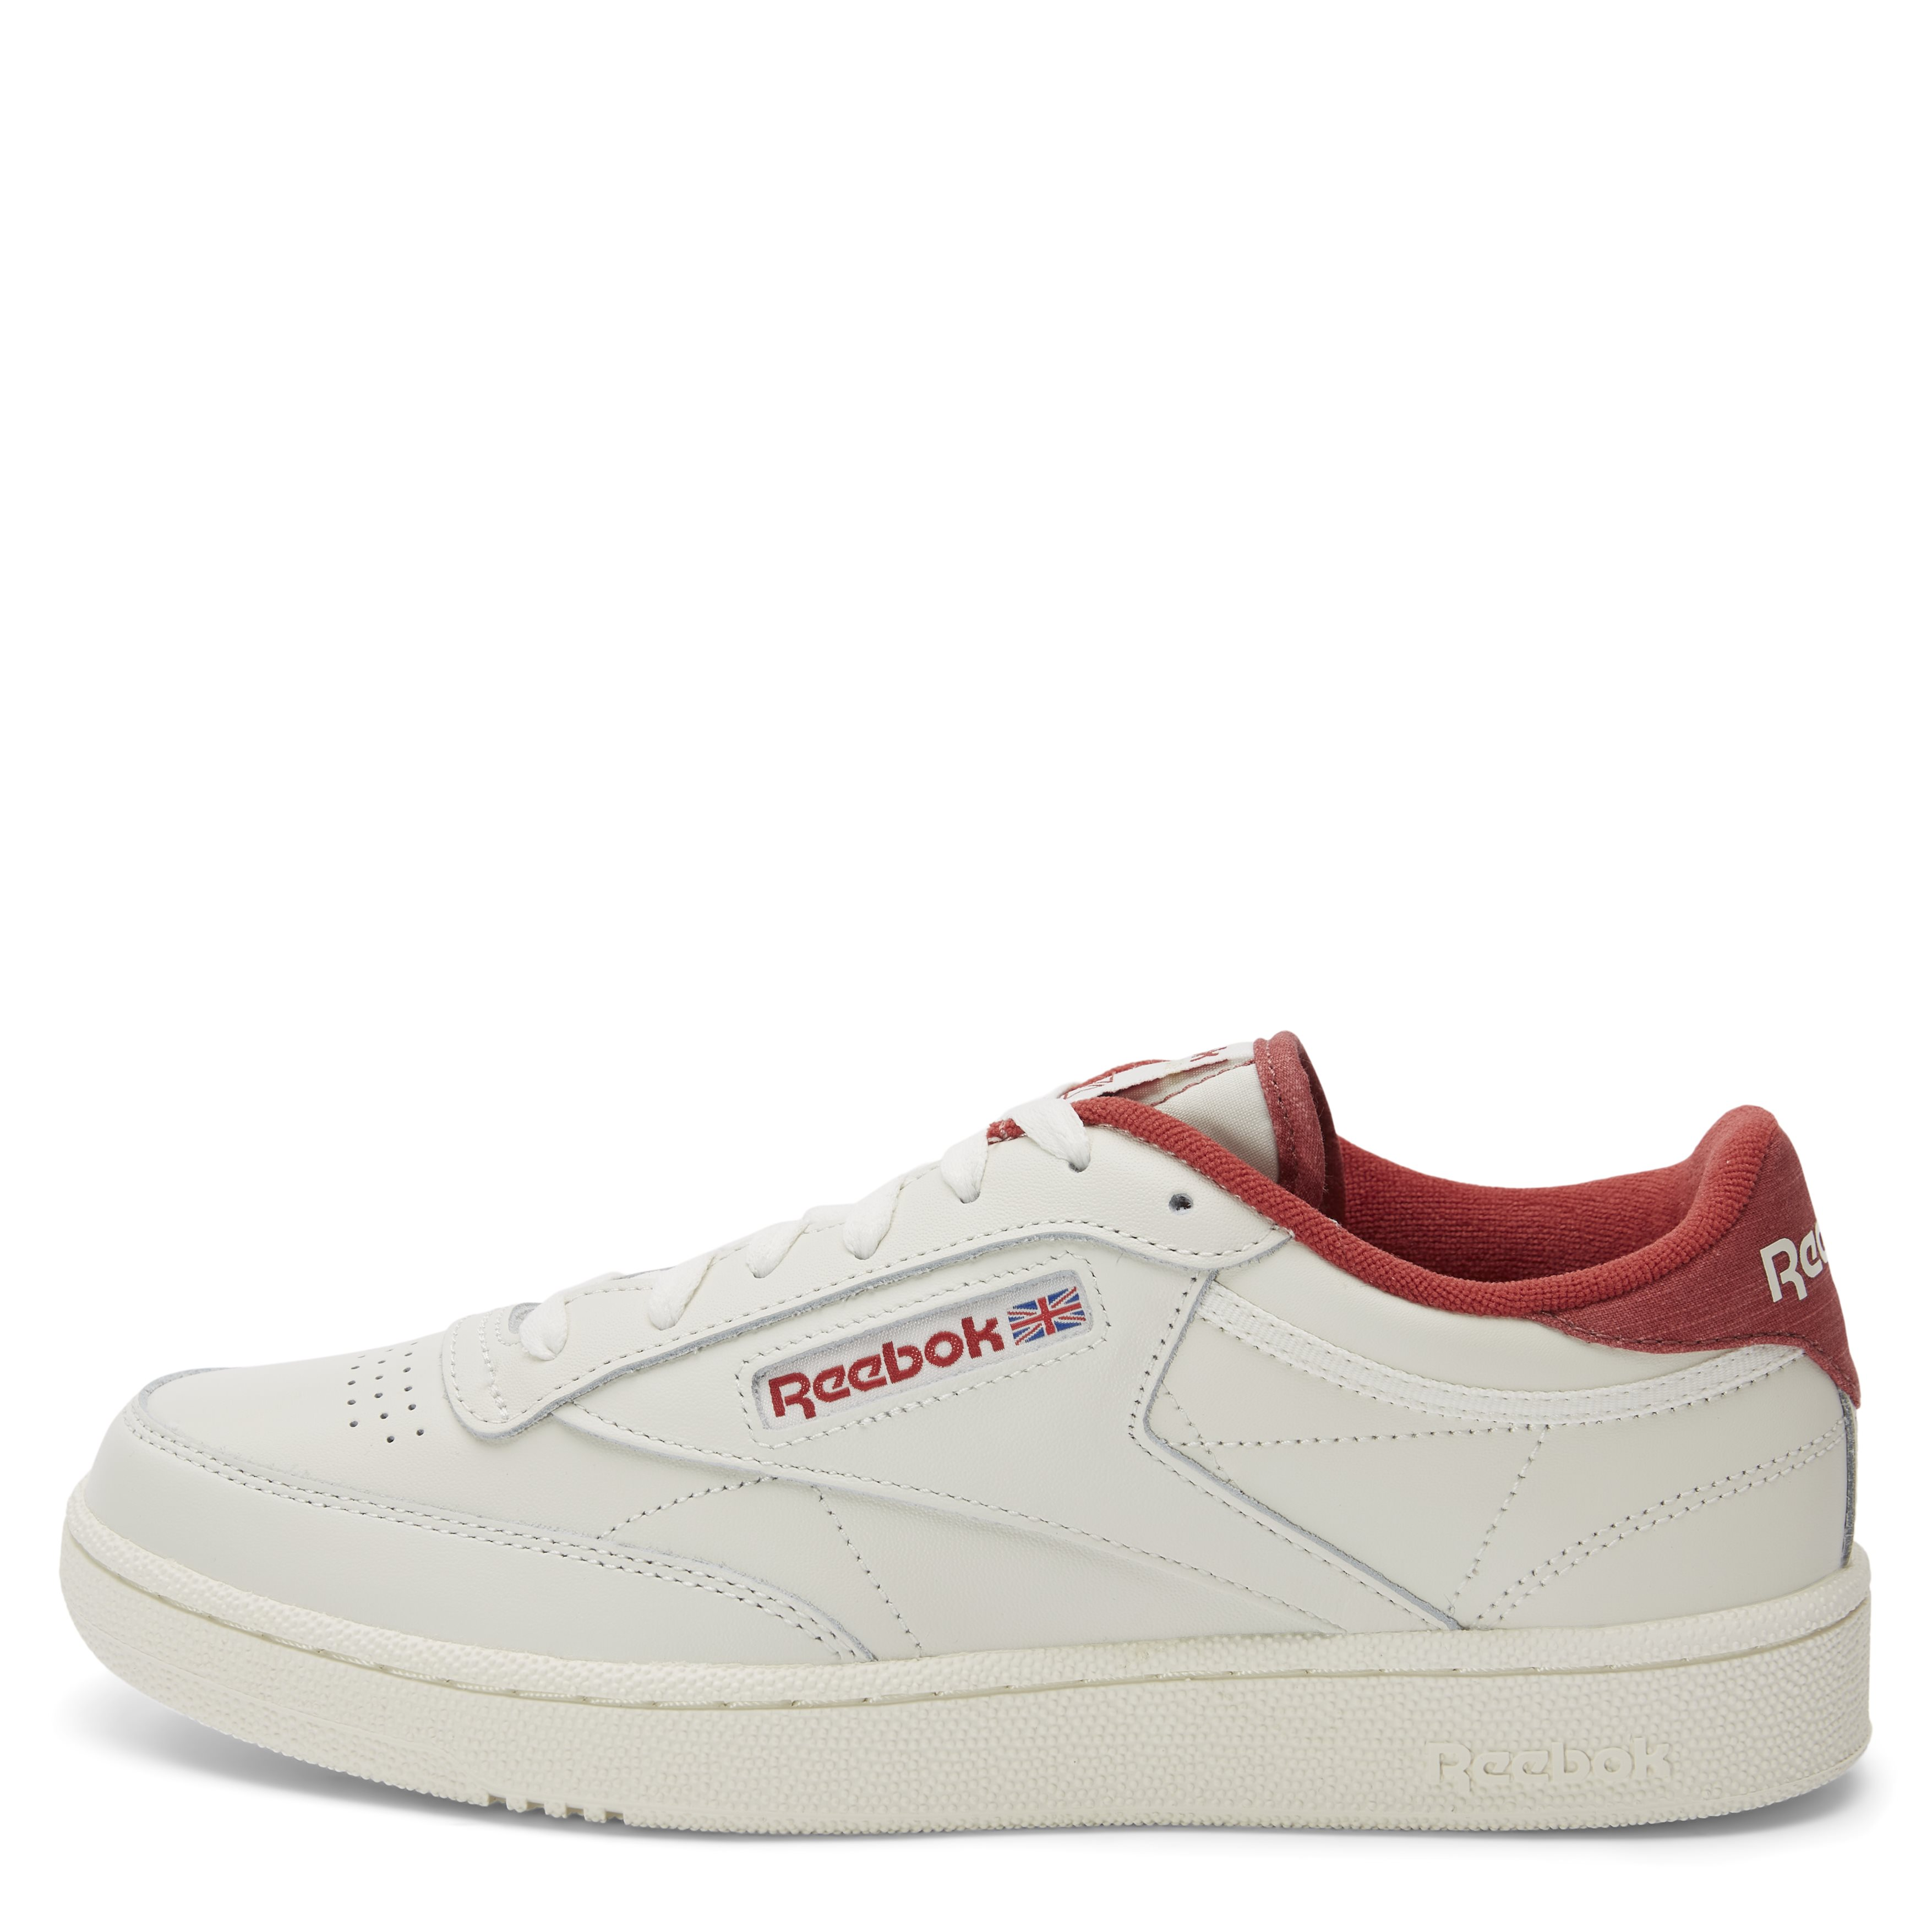 Club C Fy9424 Sneaker - Shoes - White